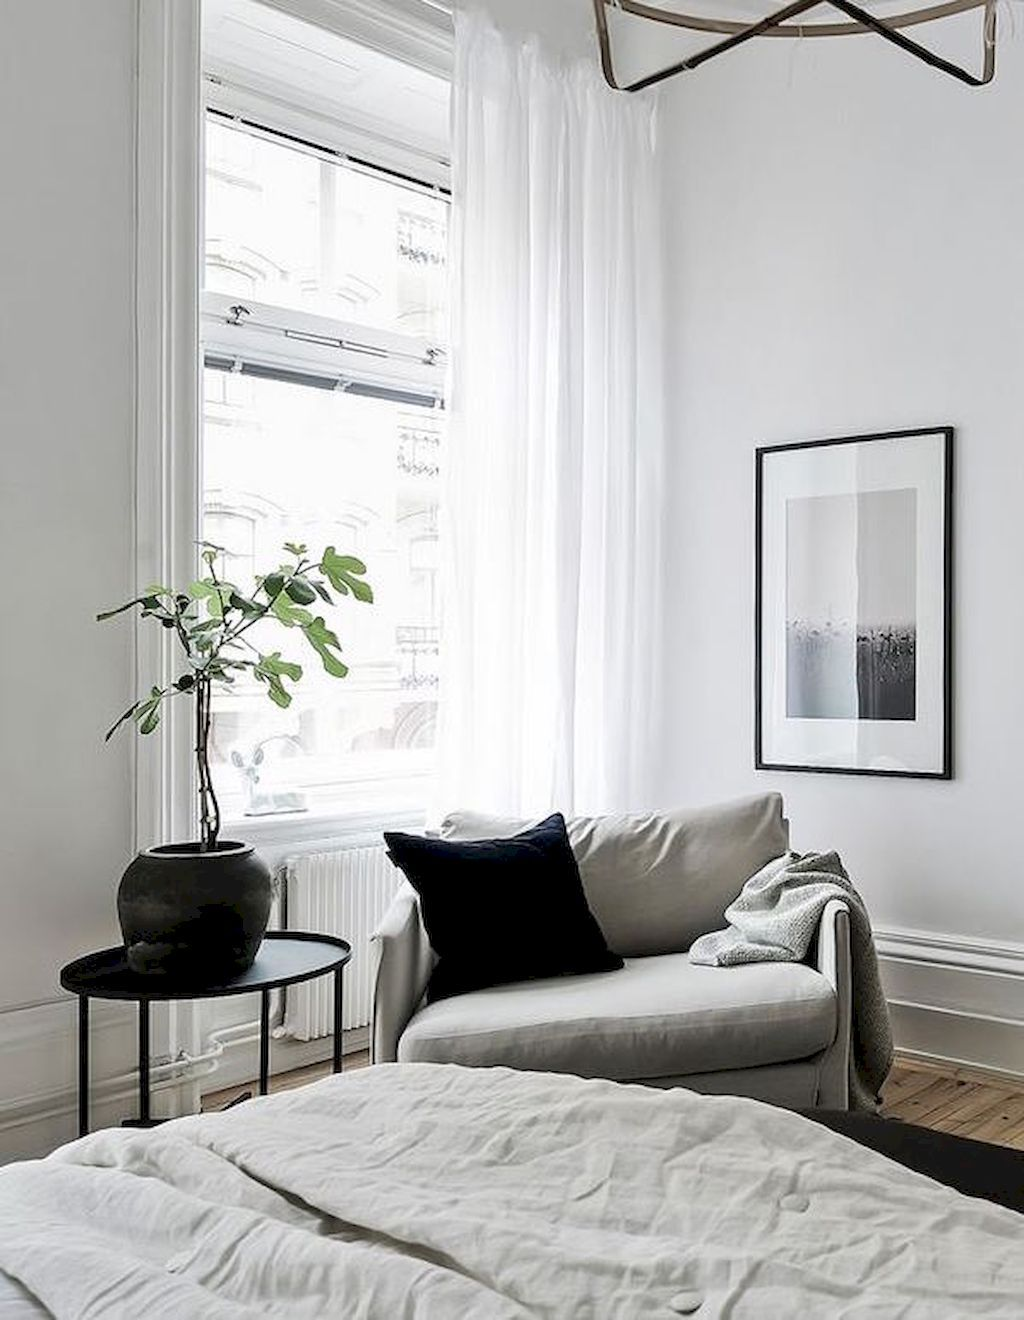 Minimalist Bedroom Decor Ideas: Pin By Candice Will On Bedroom